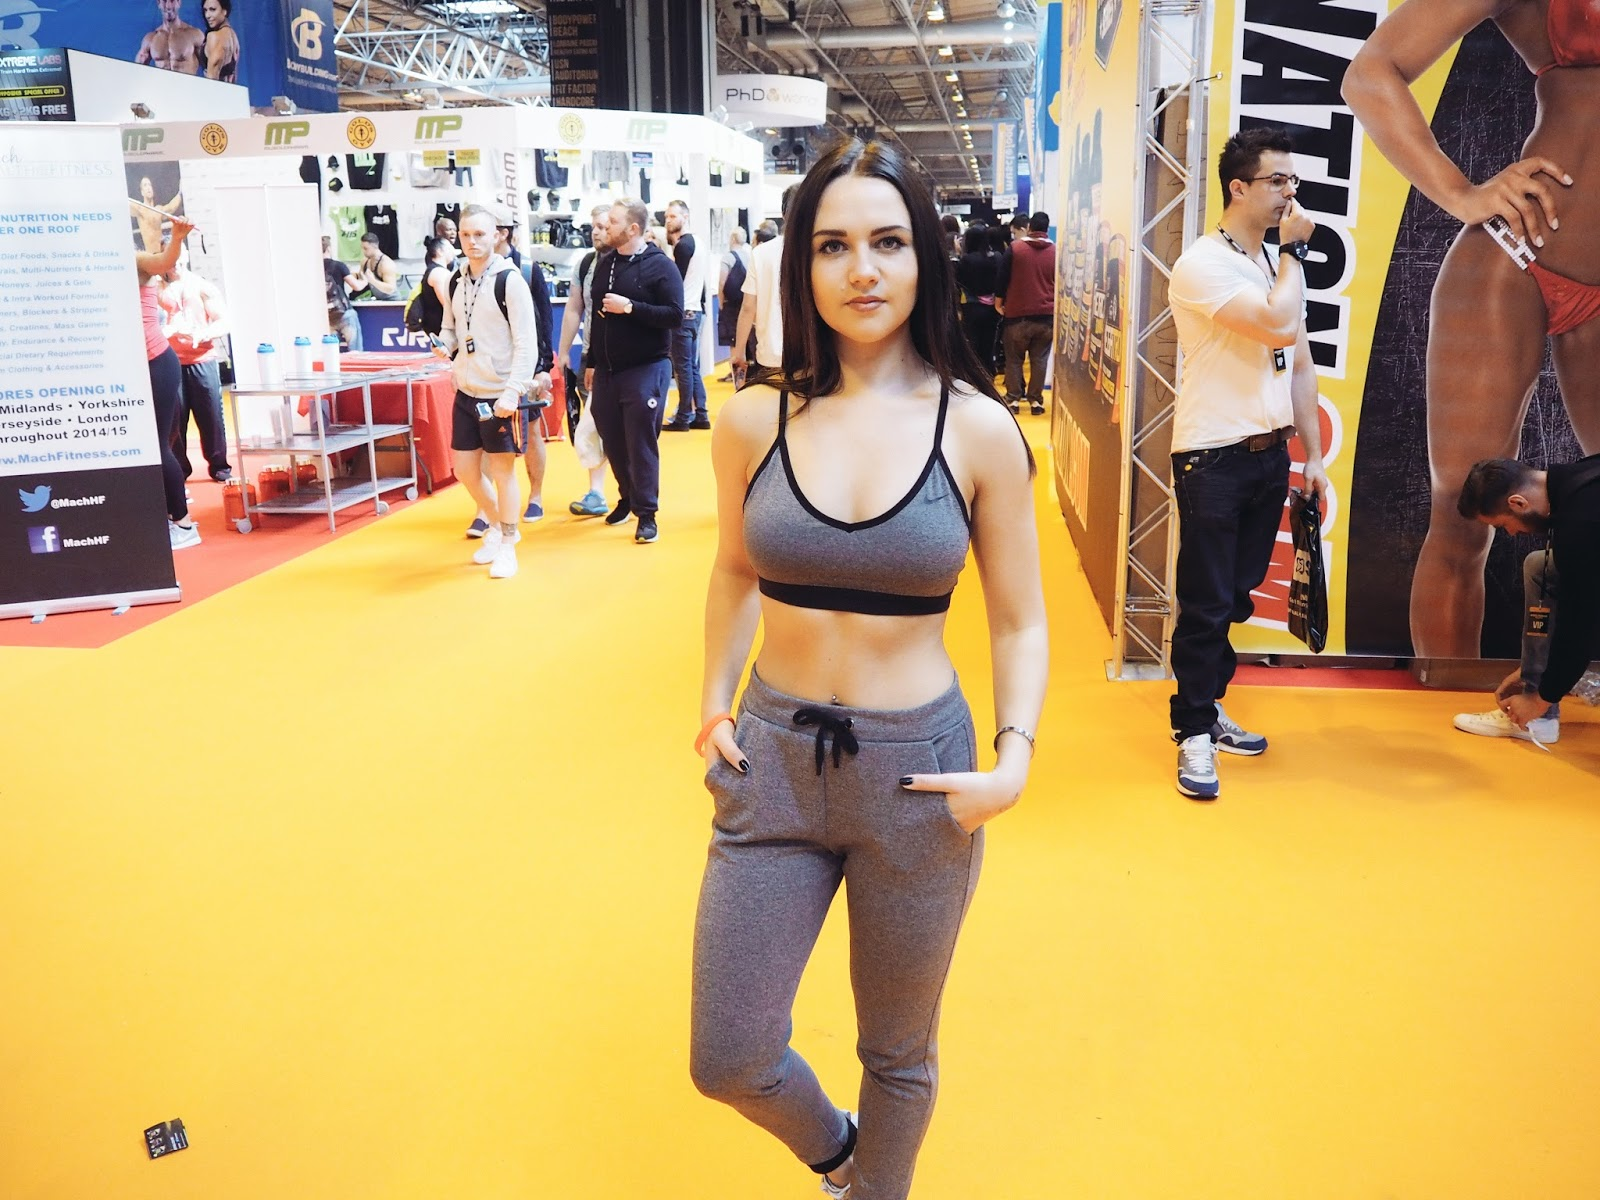 Body Power Expo 2015 Body Power Expo Birmingham